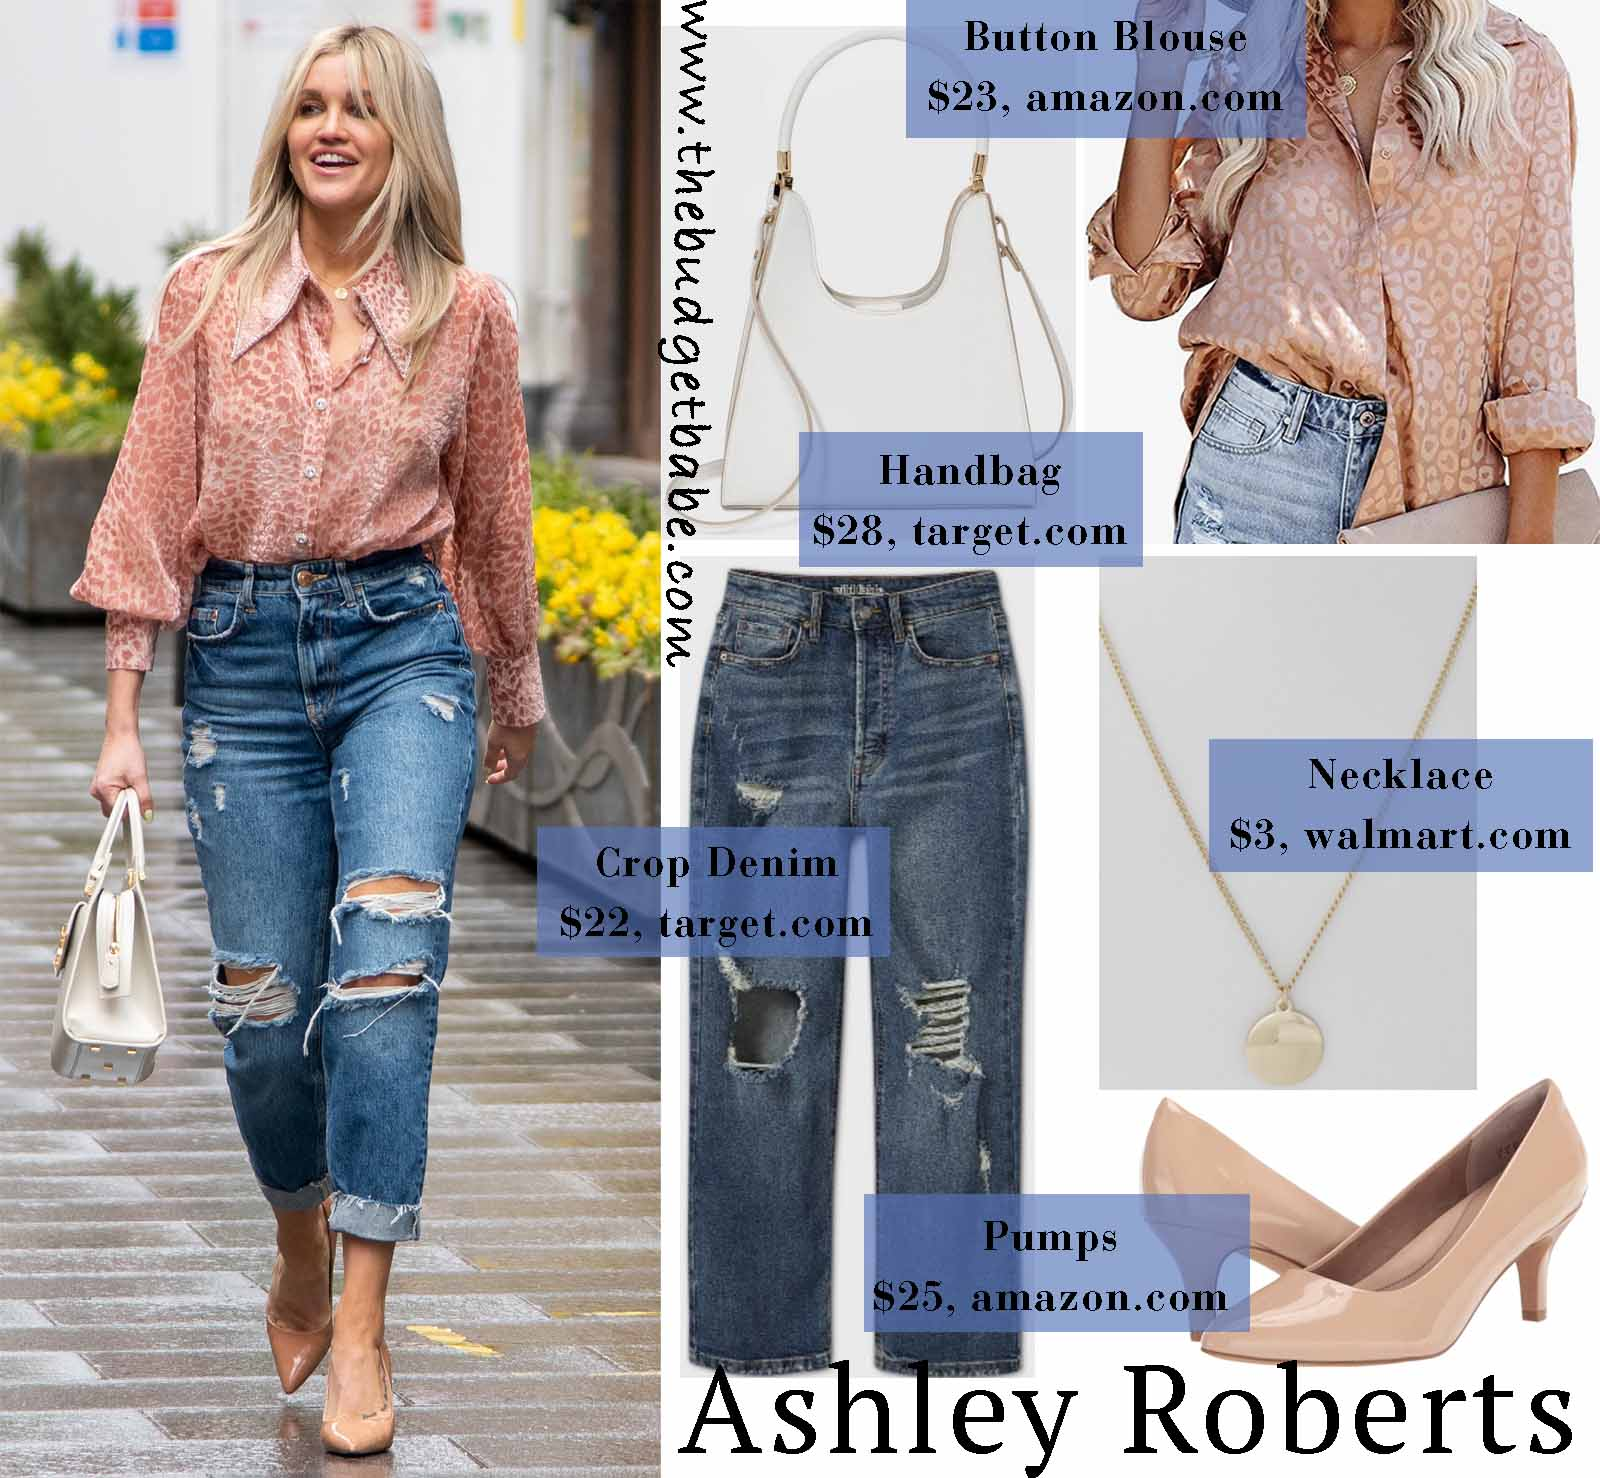 Ashley Roberts' blouse is the cutest!